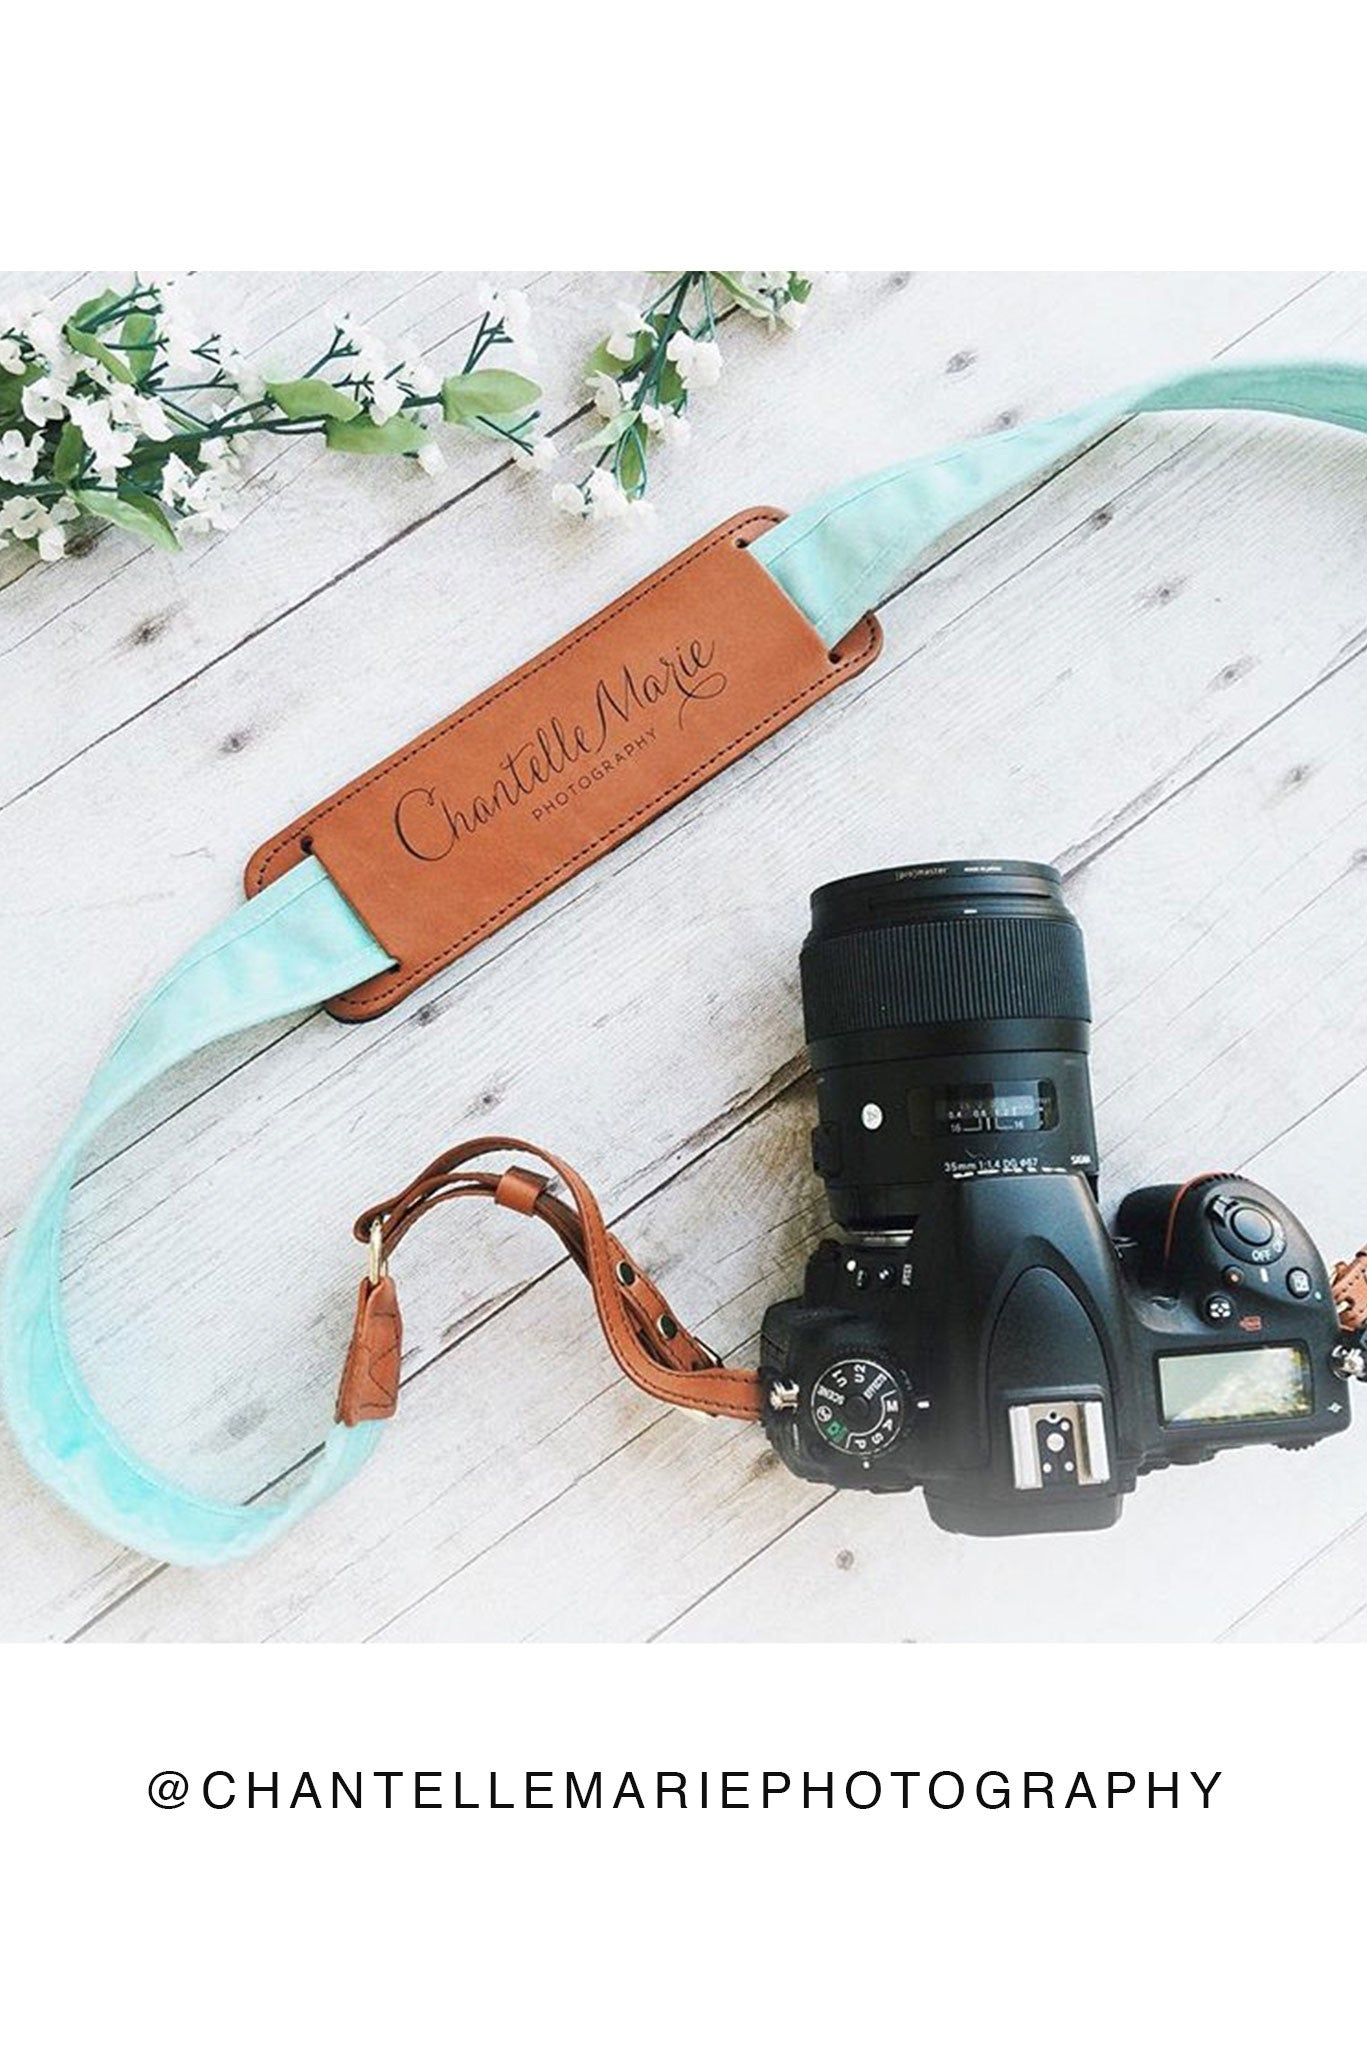 FOTO | Mint Fotostrap - a mint green canvas and genuine leather camera strap that can be personalized with a monogram or business logo, making it the perfect personalized gift!